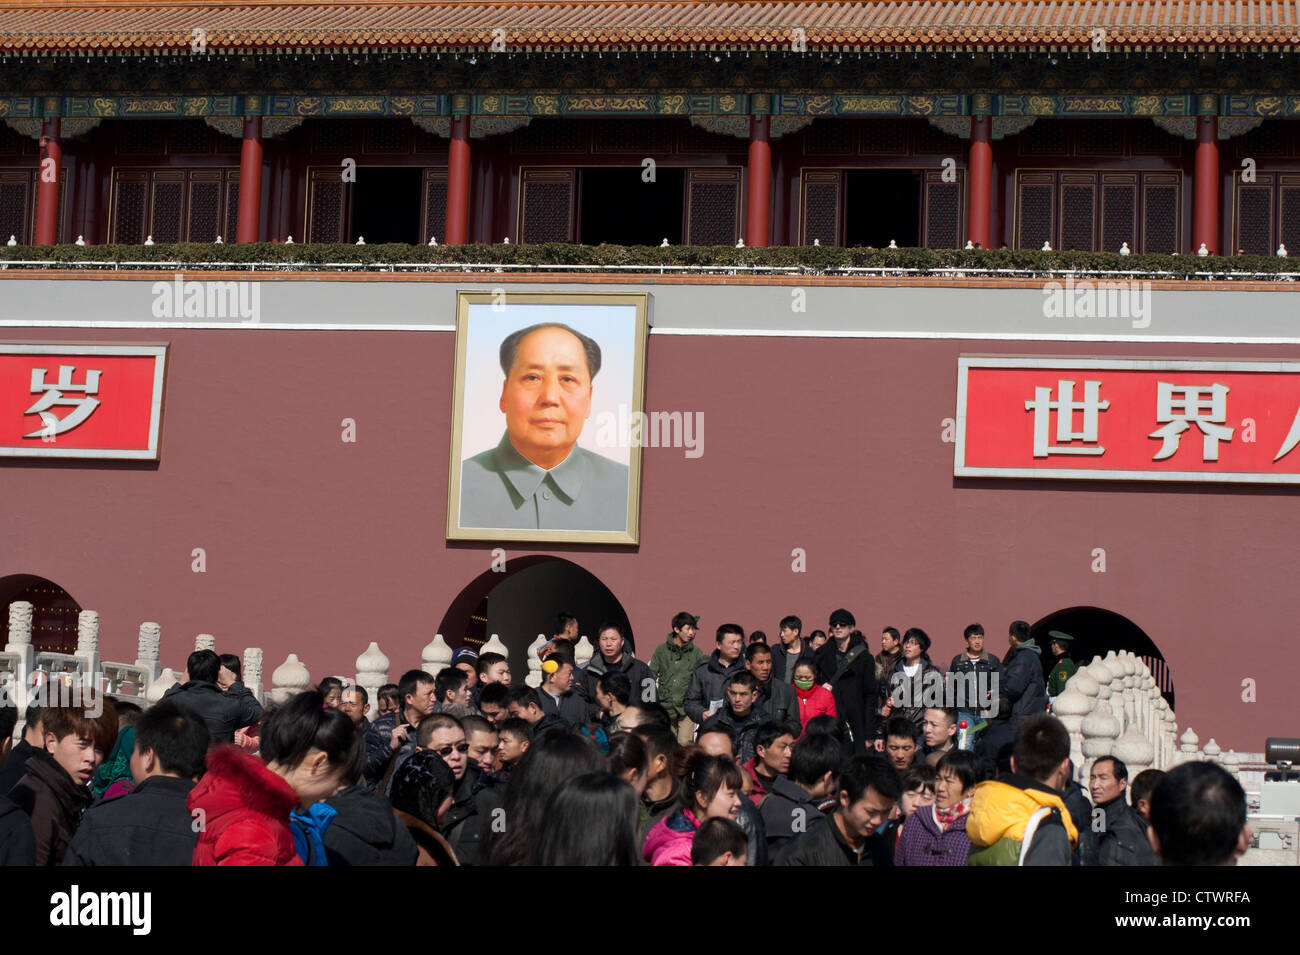 Entrance to The Forbidden City - Stock Image